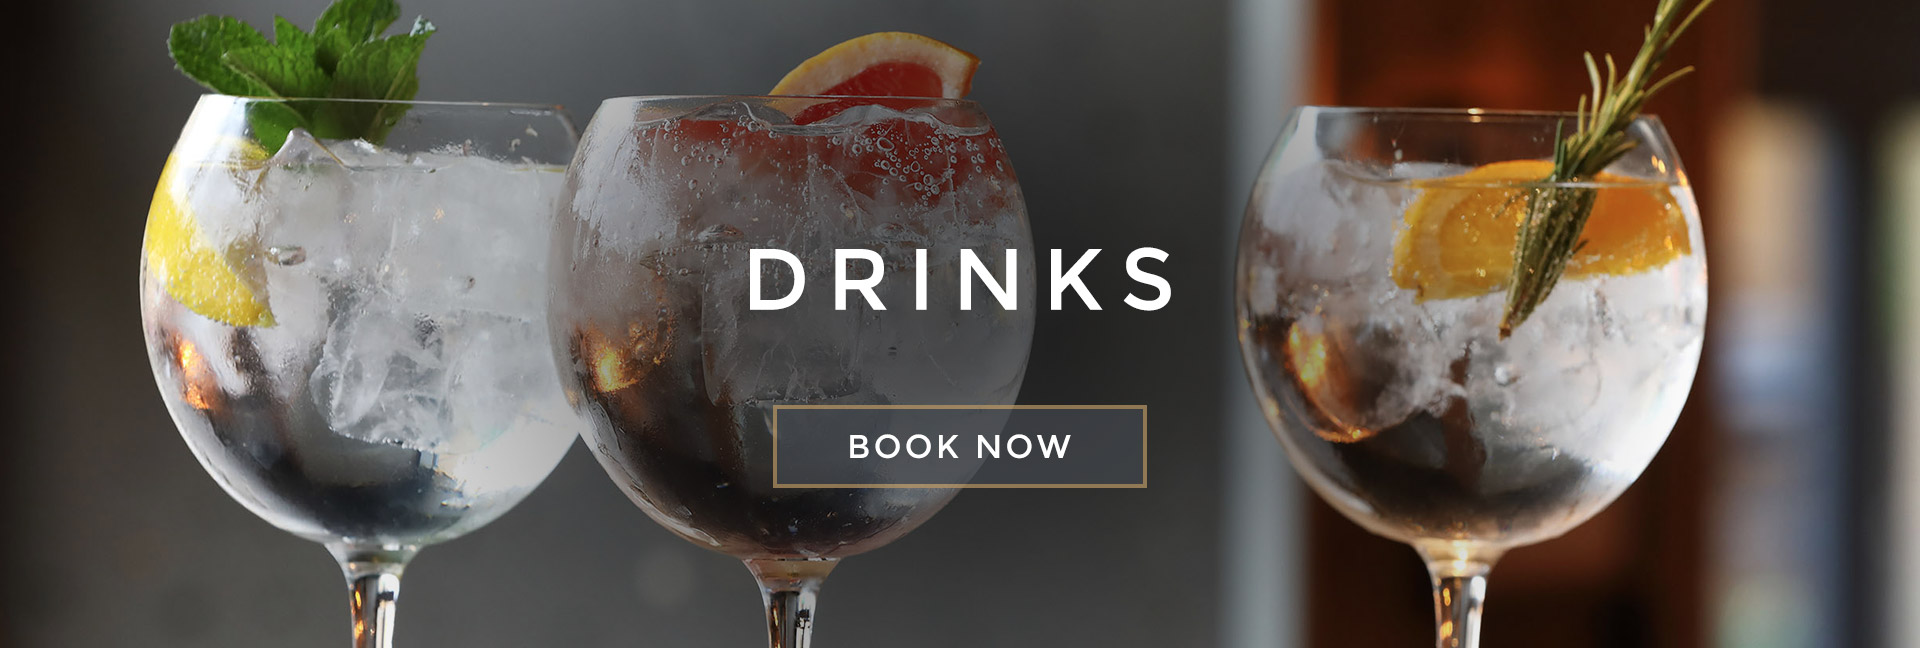 Drinks at All Bar One Kingsway - Book your table